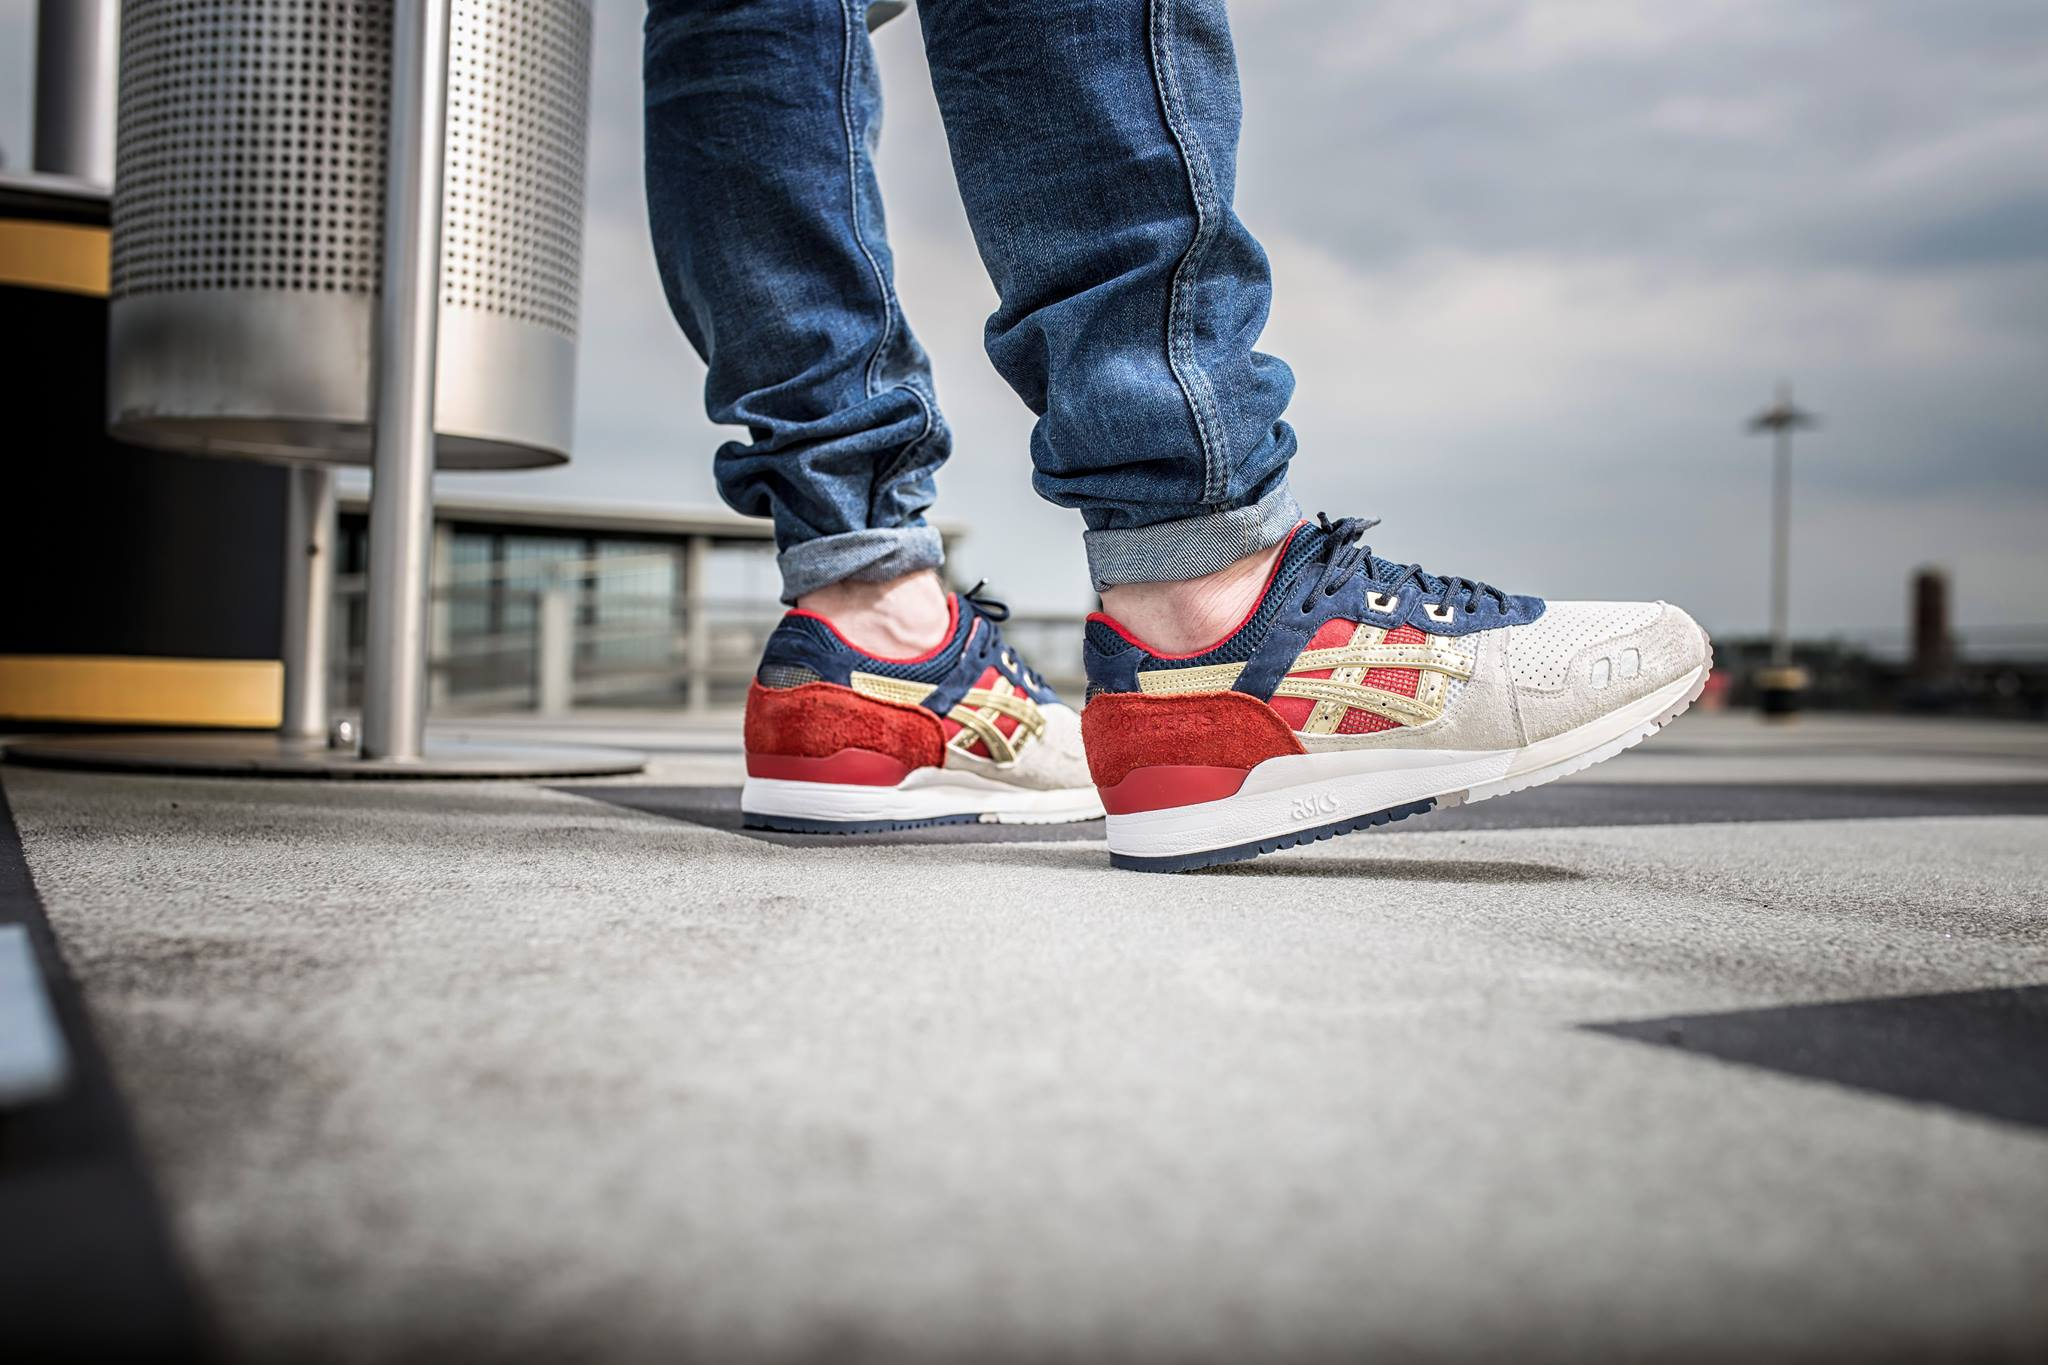 Gerrit Hamm - Concepts x Asics Gel-Lyte III %22Boston Tea Party%22